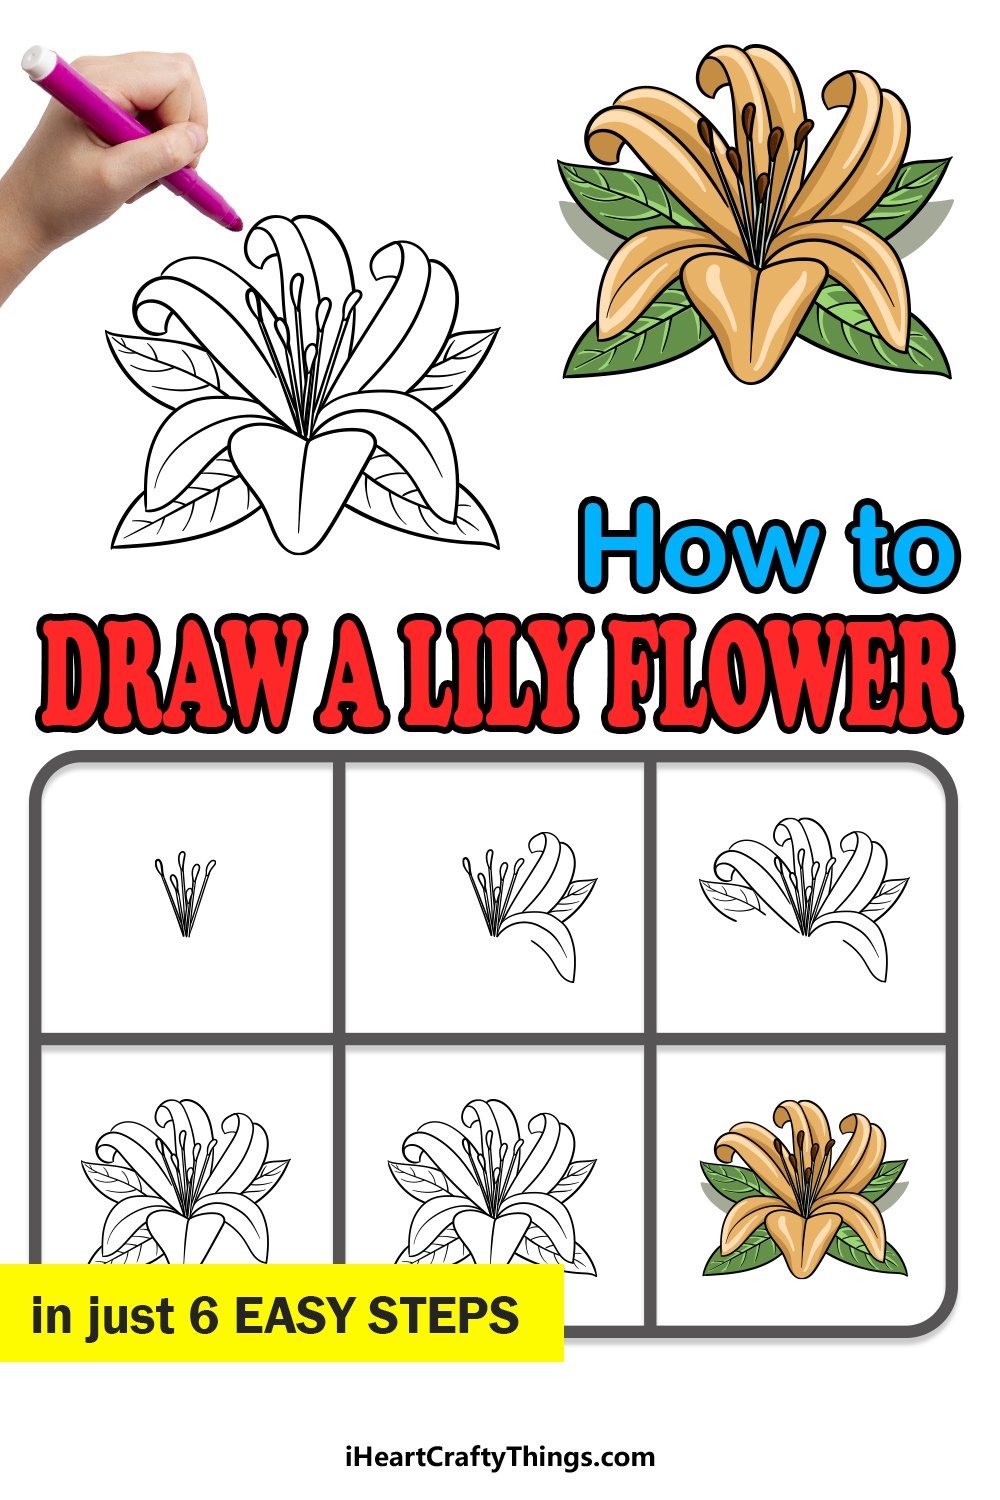 how to draw a Lily Flower in 6 easy steps